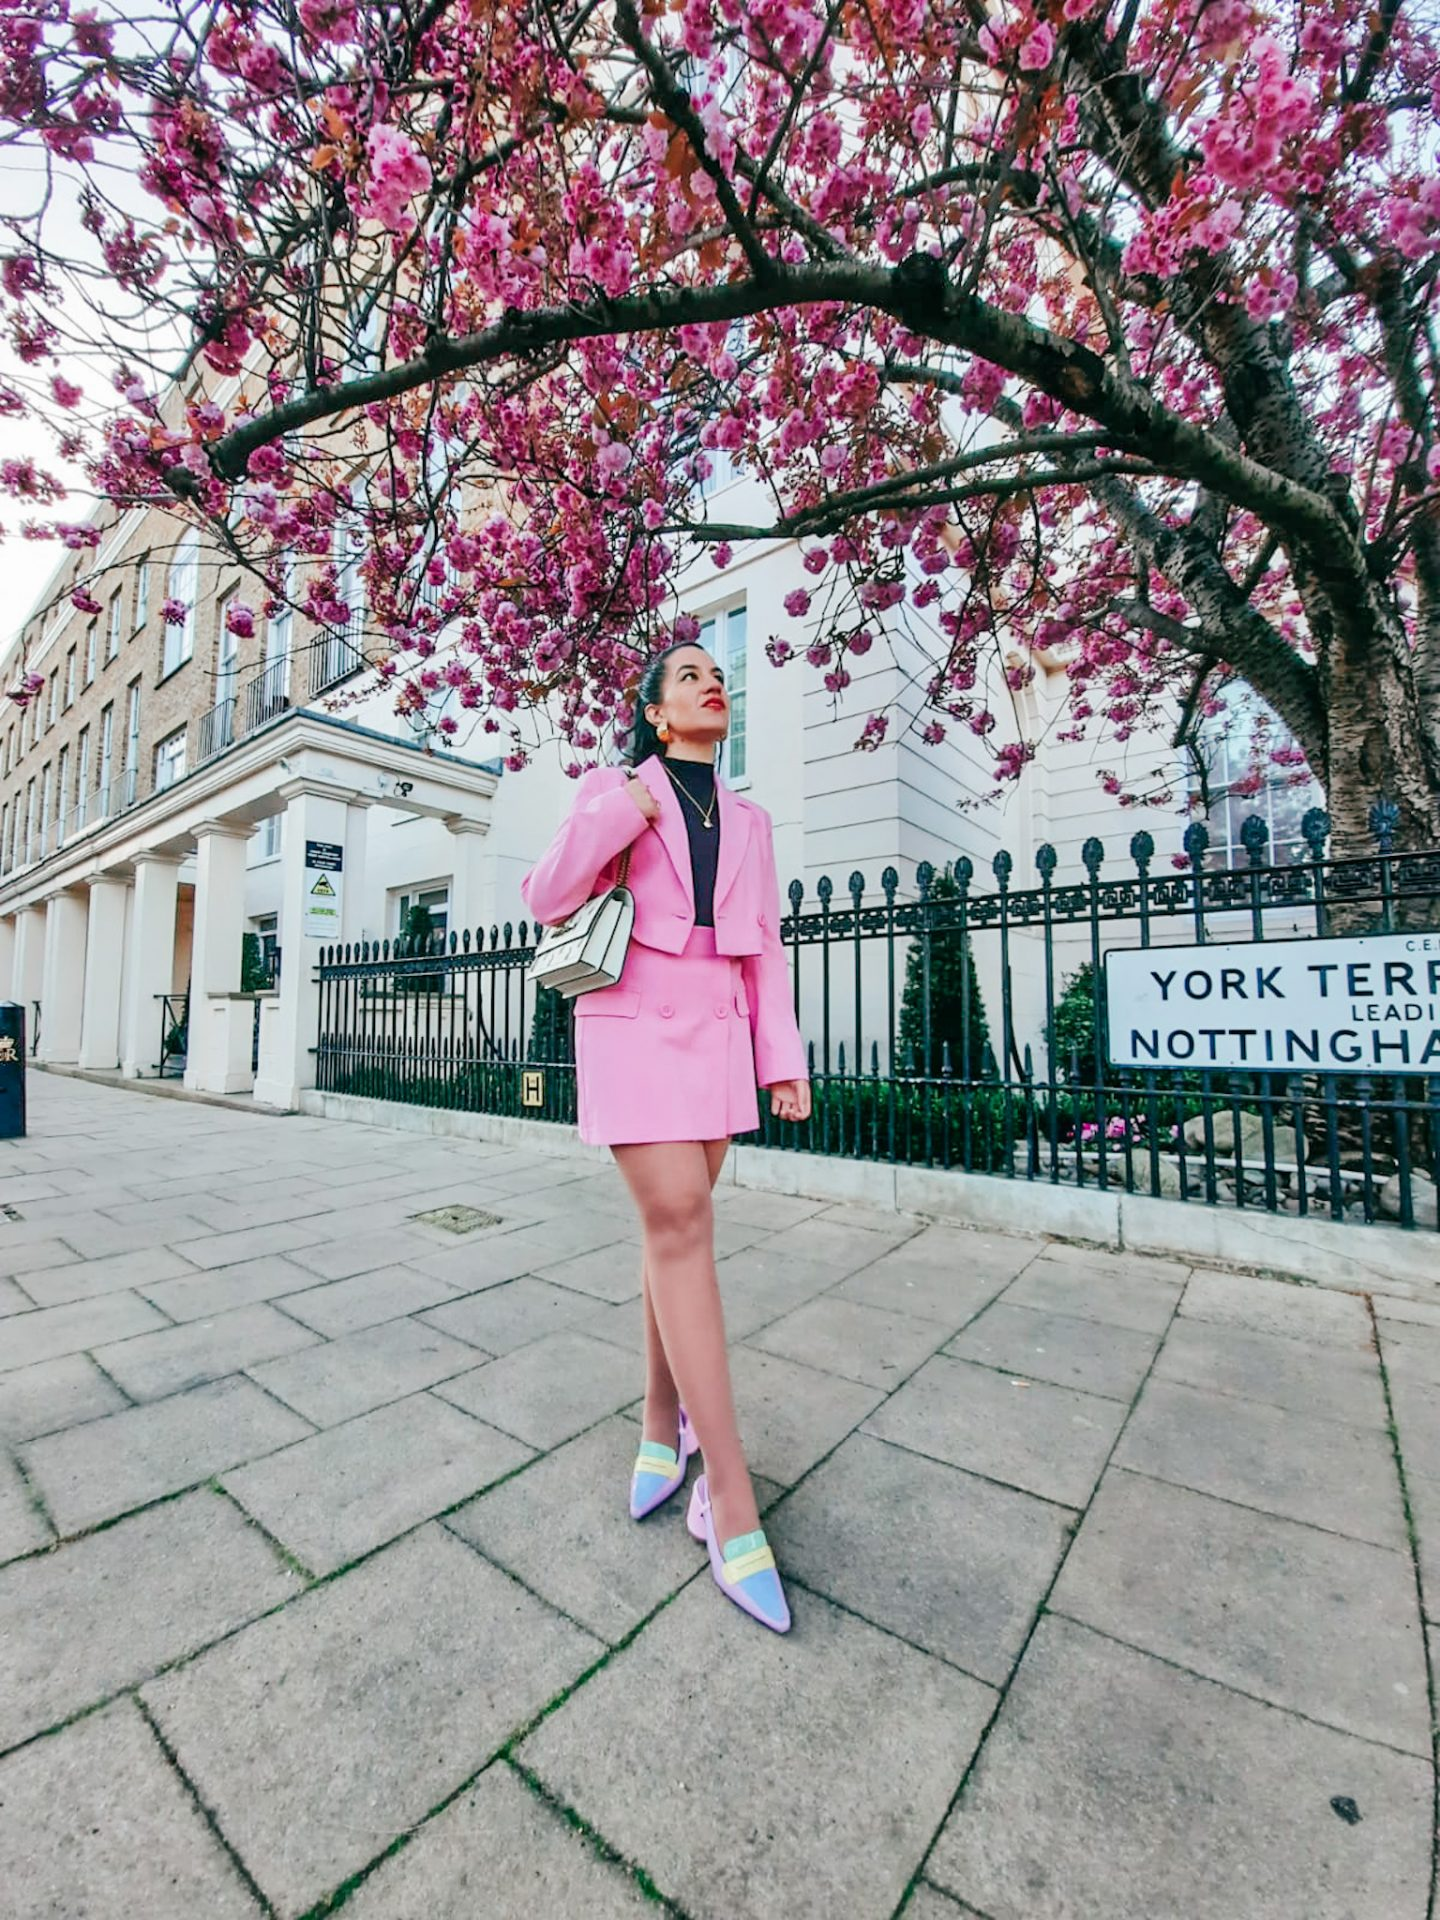 The Pink Suit of Dreams